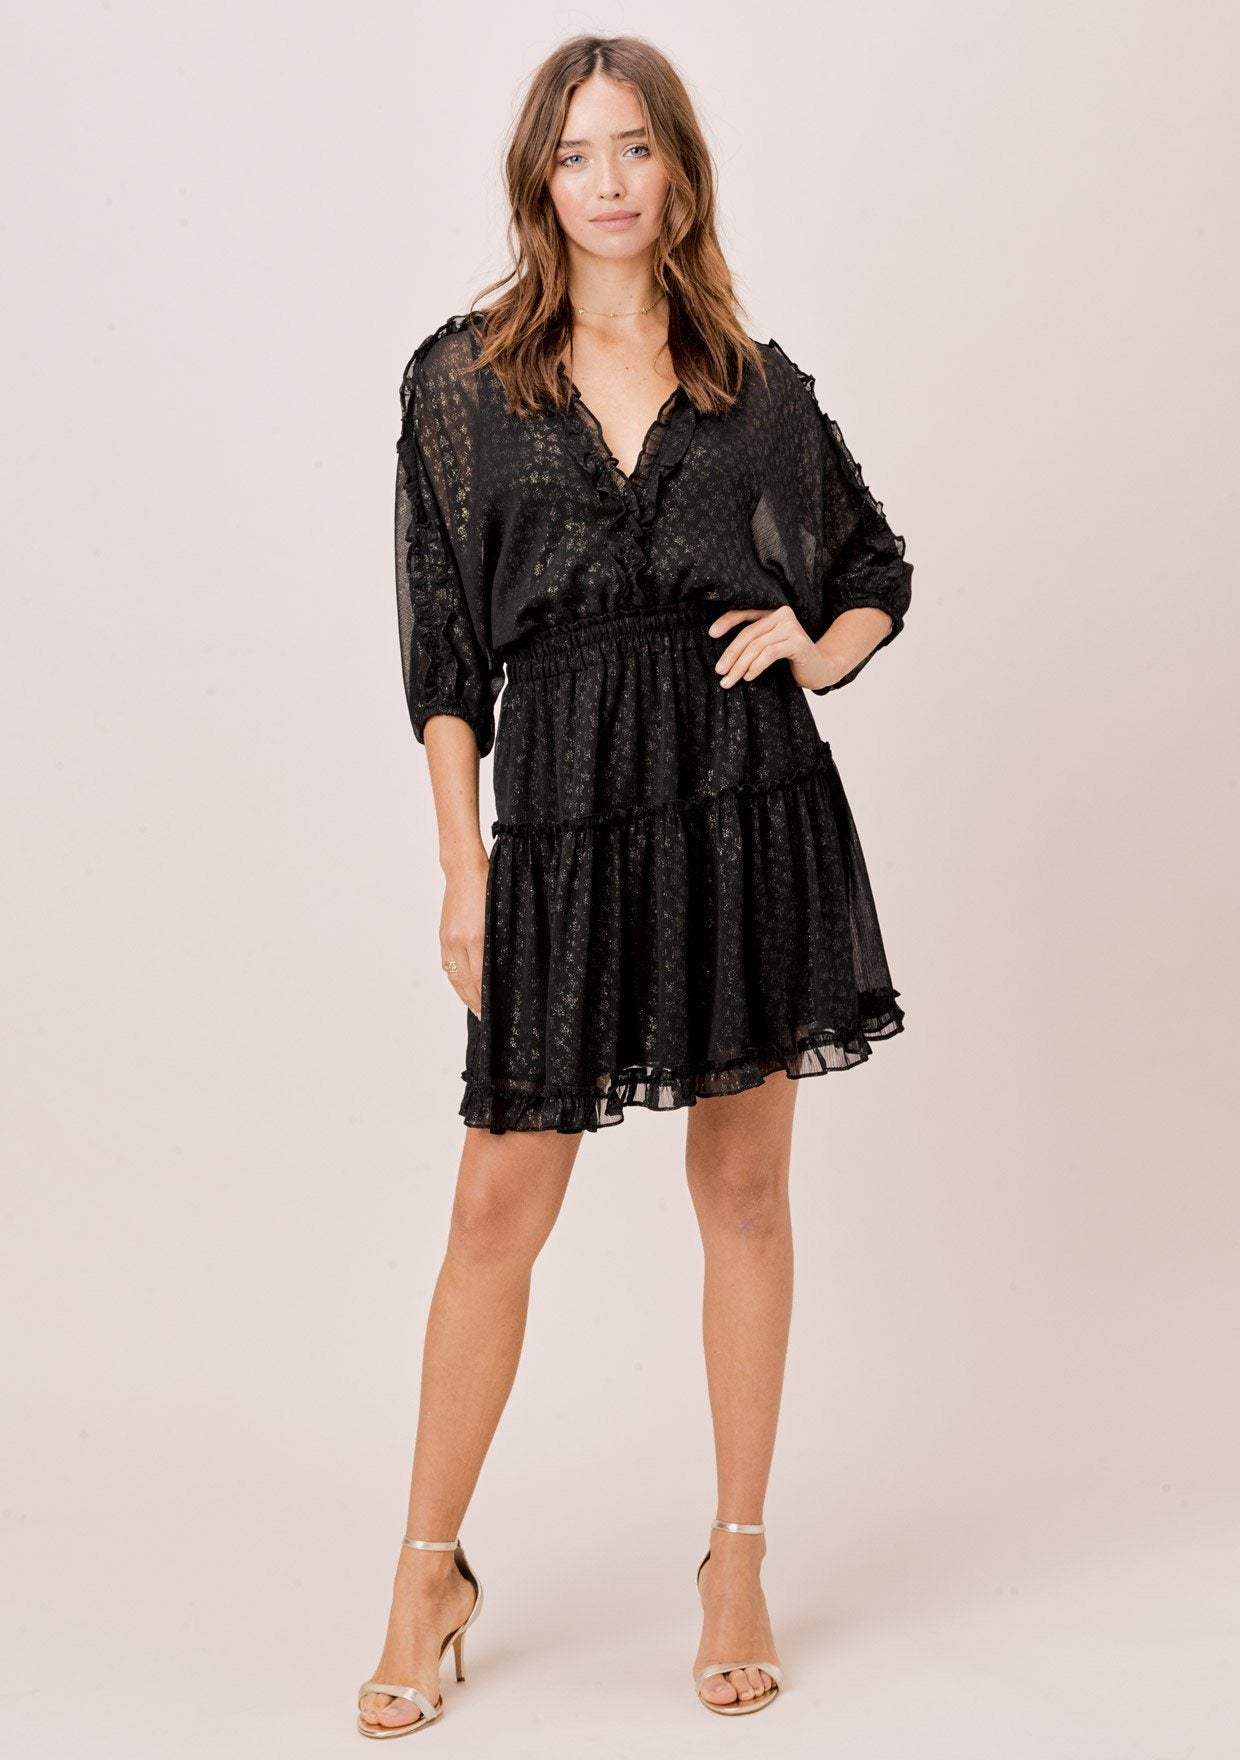 [Color: Black/Gold] Lovestitch black/gold Foil chiffon, dolman sleeve mini dress with smocked elastic waist and all over ruffled details.